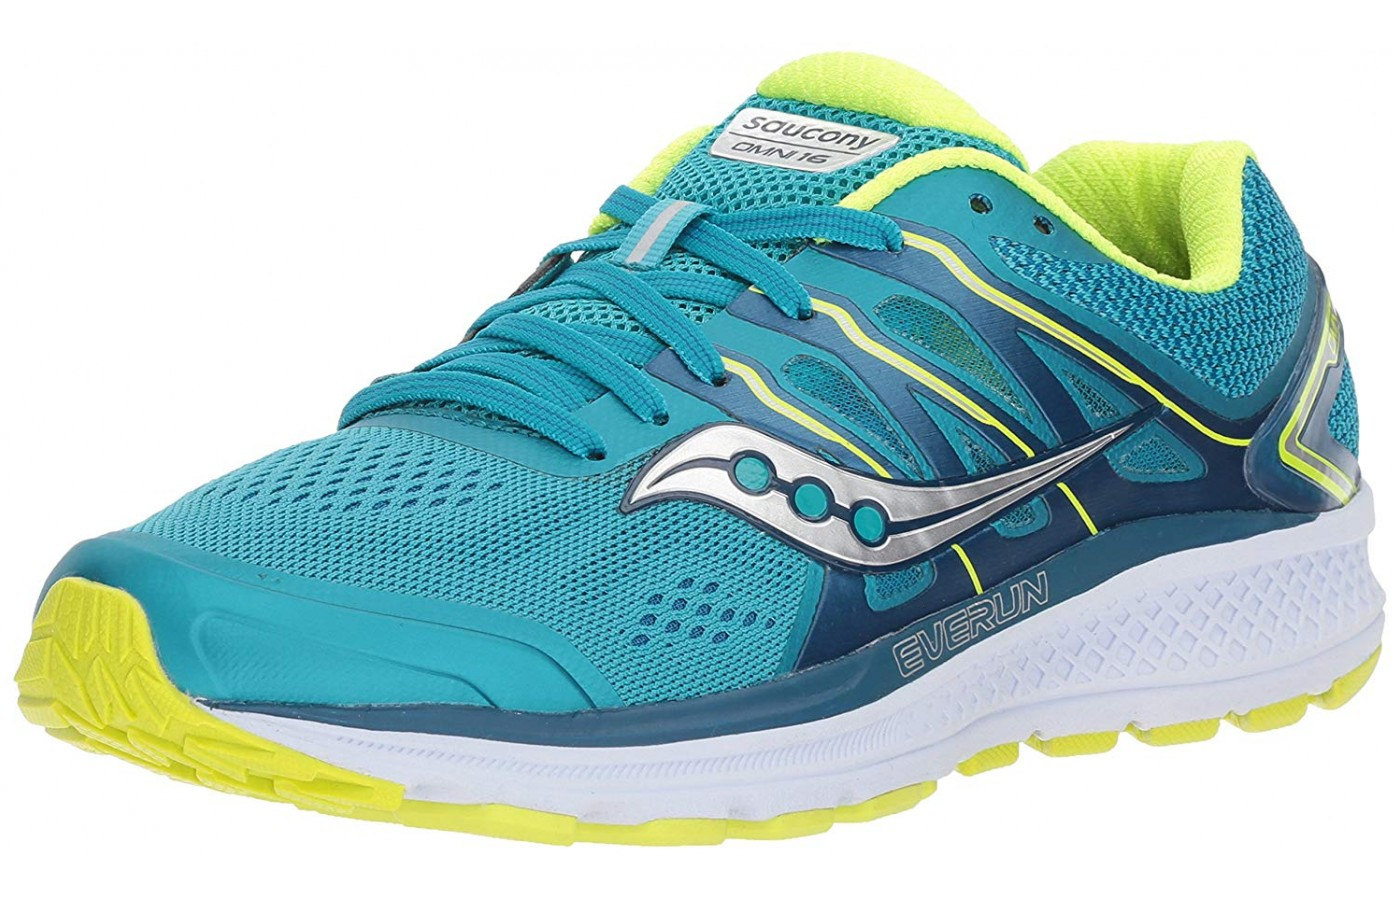 The Saucony Omni is a highly recommended stability running shoe